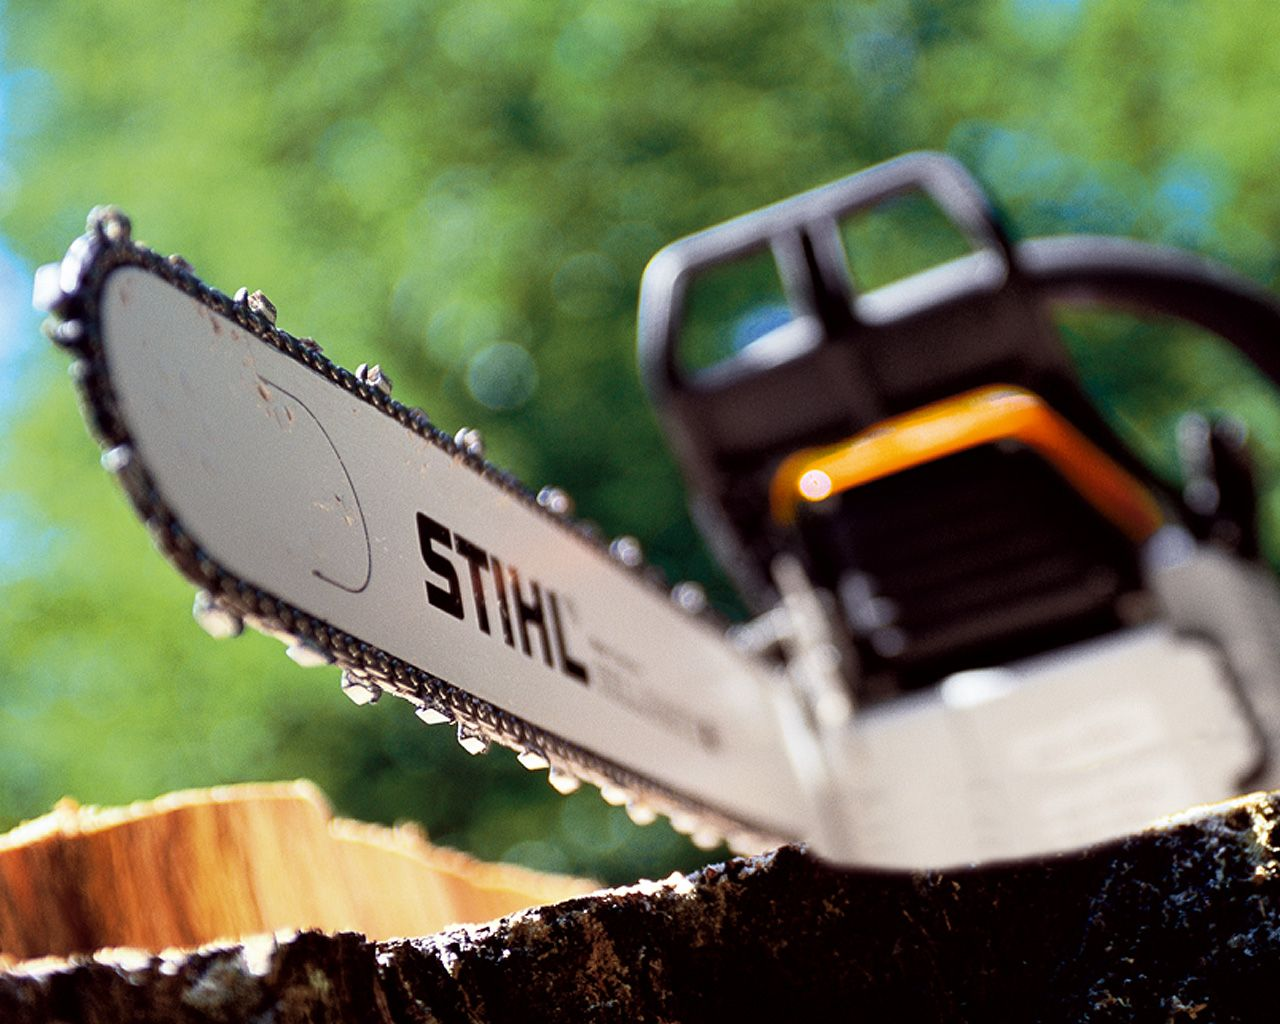 Stihl Wallpaper Backgrounds in HD View wallpaper wallpaper 1280x1024